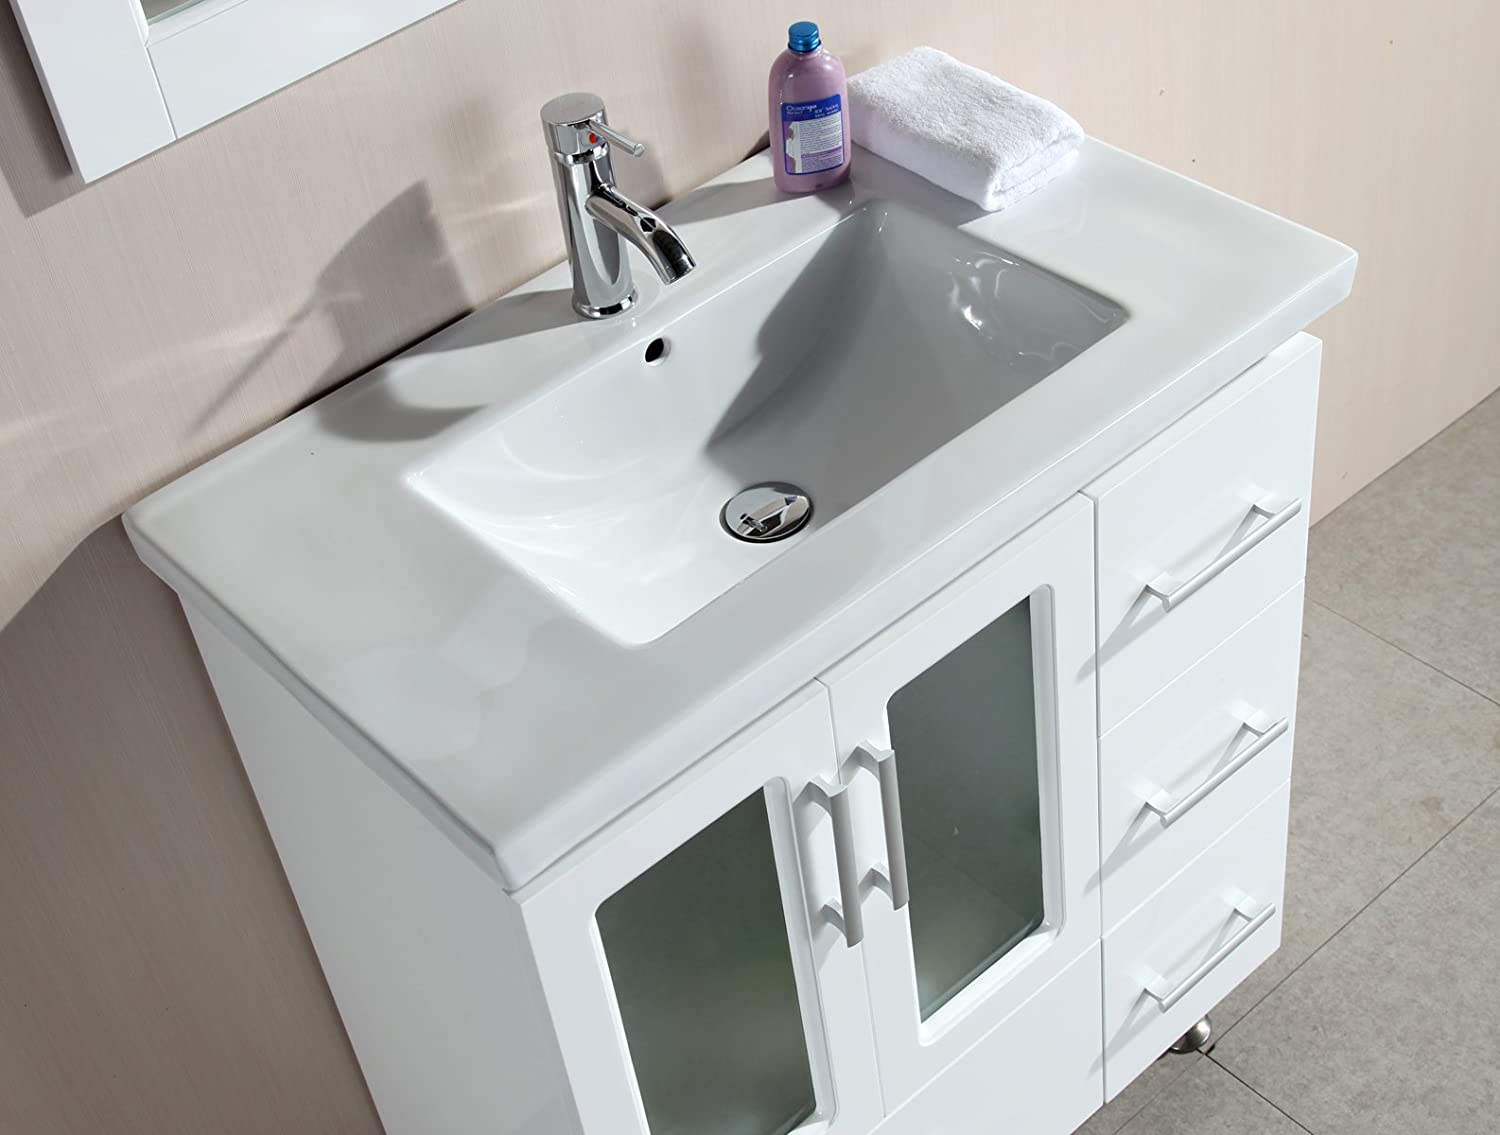 Captivating Design Element Stanton Single Drop In Sink Vanity Set With White Finish,  32 Inch     Amazon.com Photo Gallery